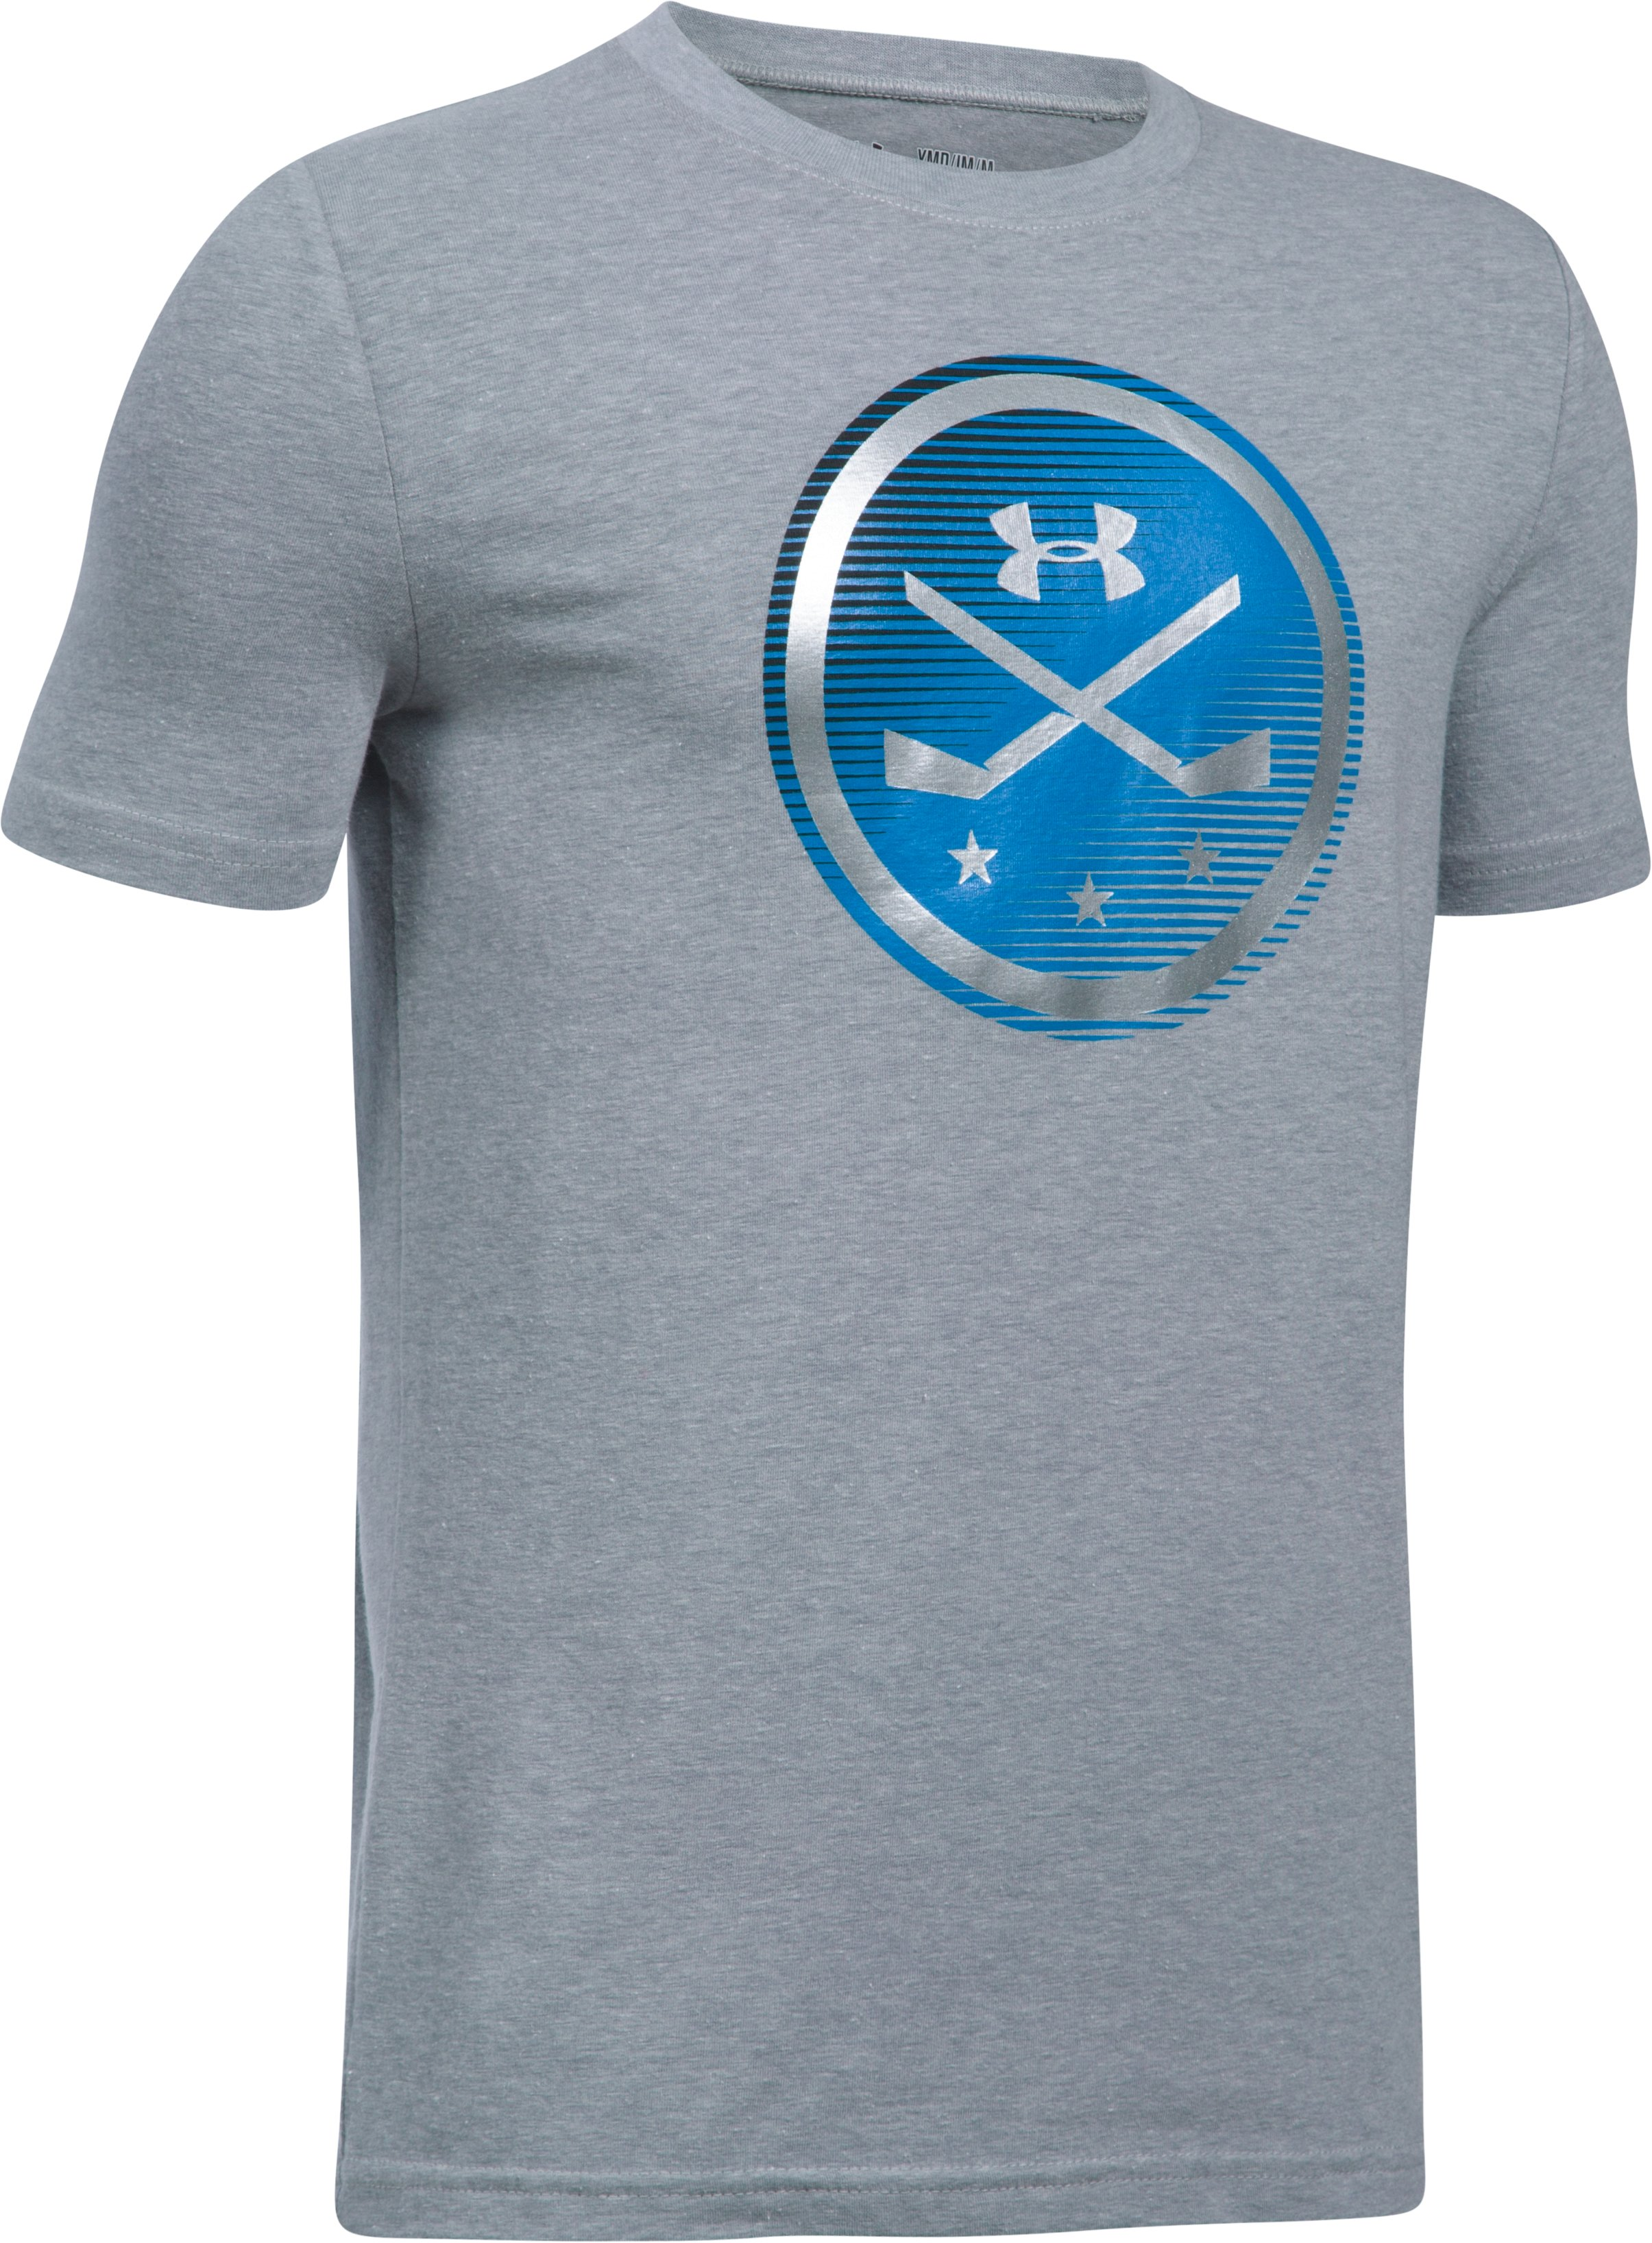 Boys' UA Hockey Logo T-Shirt, STEEL LIGHT HEATHER